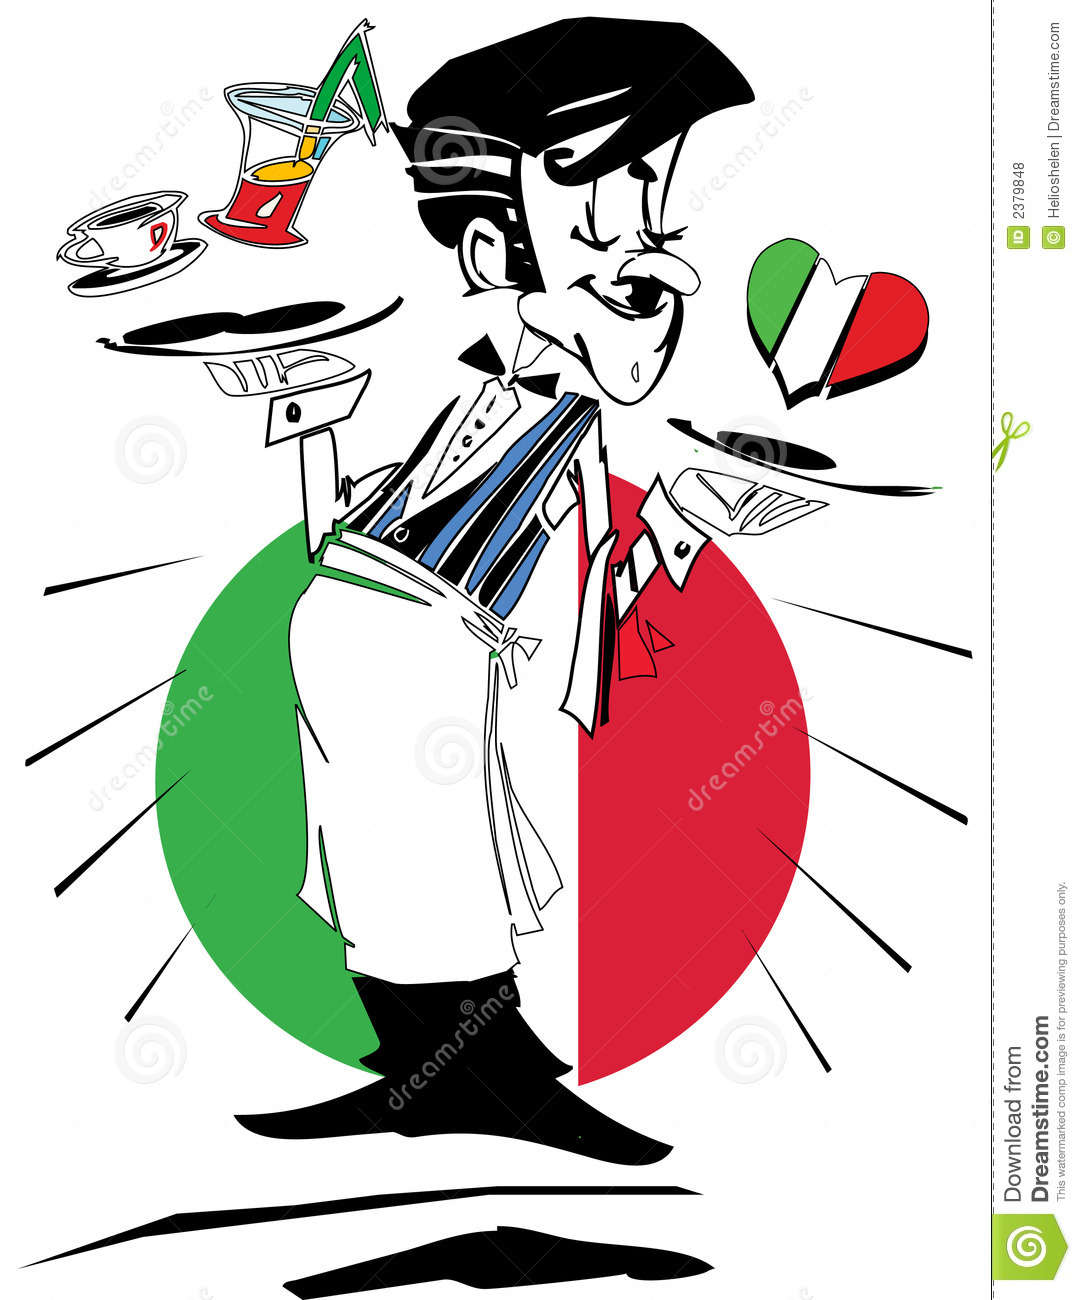 Waiter With Flag Of Italy, Cartoon Caricature Royalty Free Stock Photos - Image: 2379848